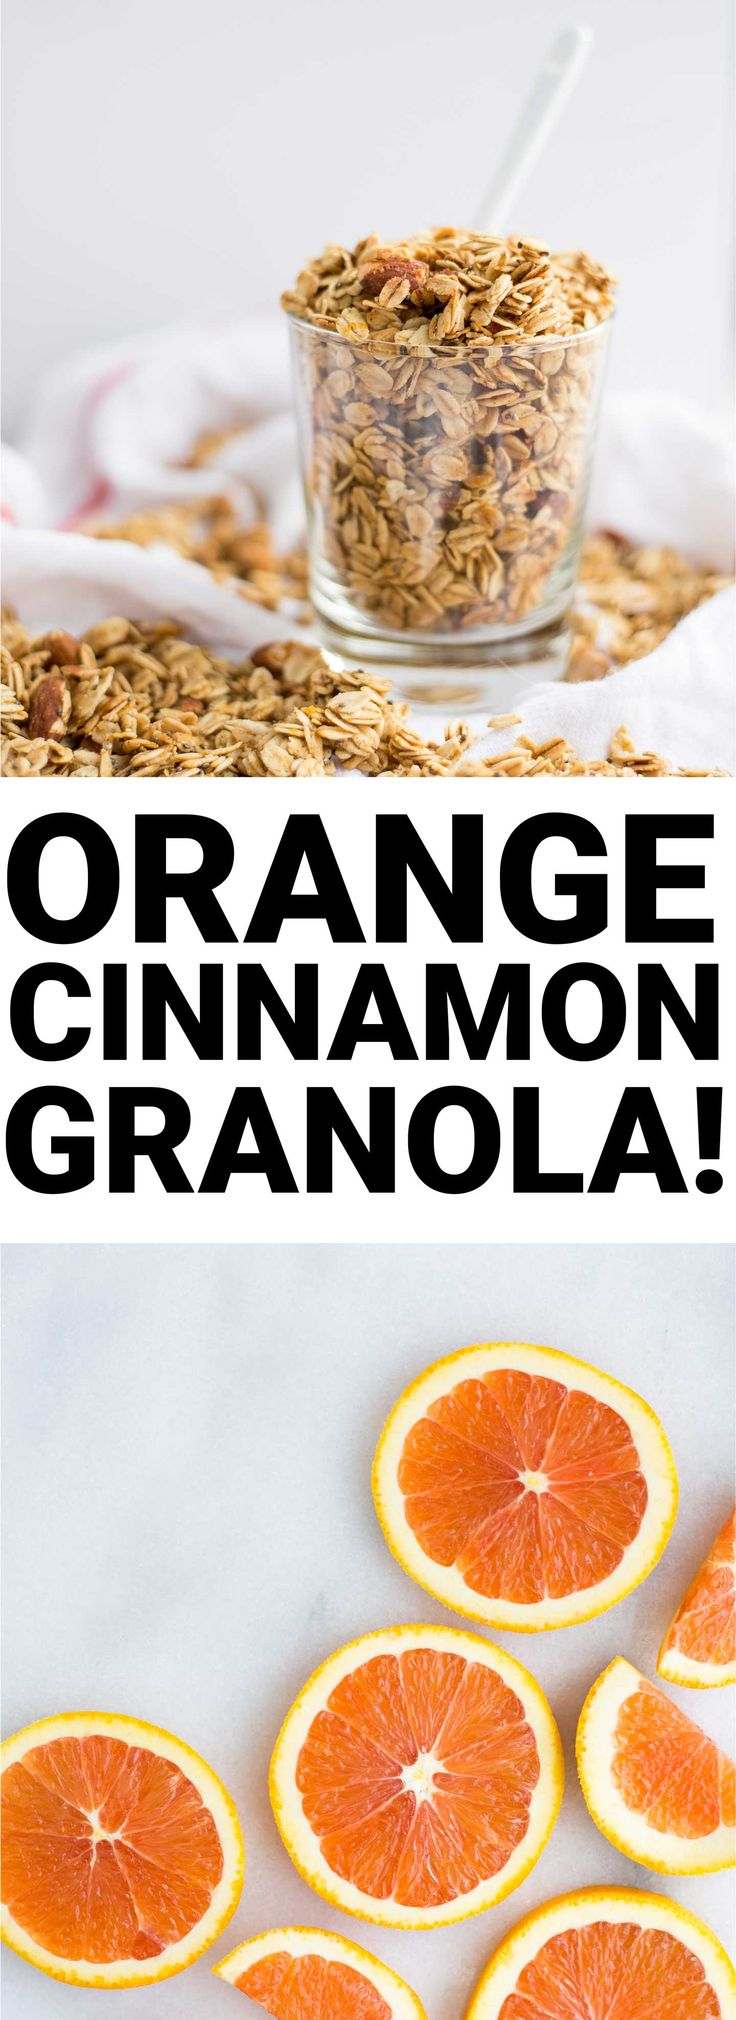 Addictive Orange Cinnamon Granola: A sweet and citrusy granola that's filled with chia seeds, almonds, and rolled oats. A wholesome vegan and gluten free breakfast or snack! || fooduzzi.com recipe